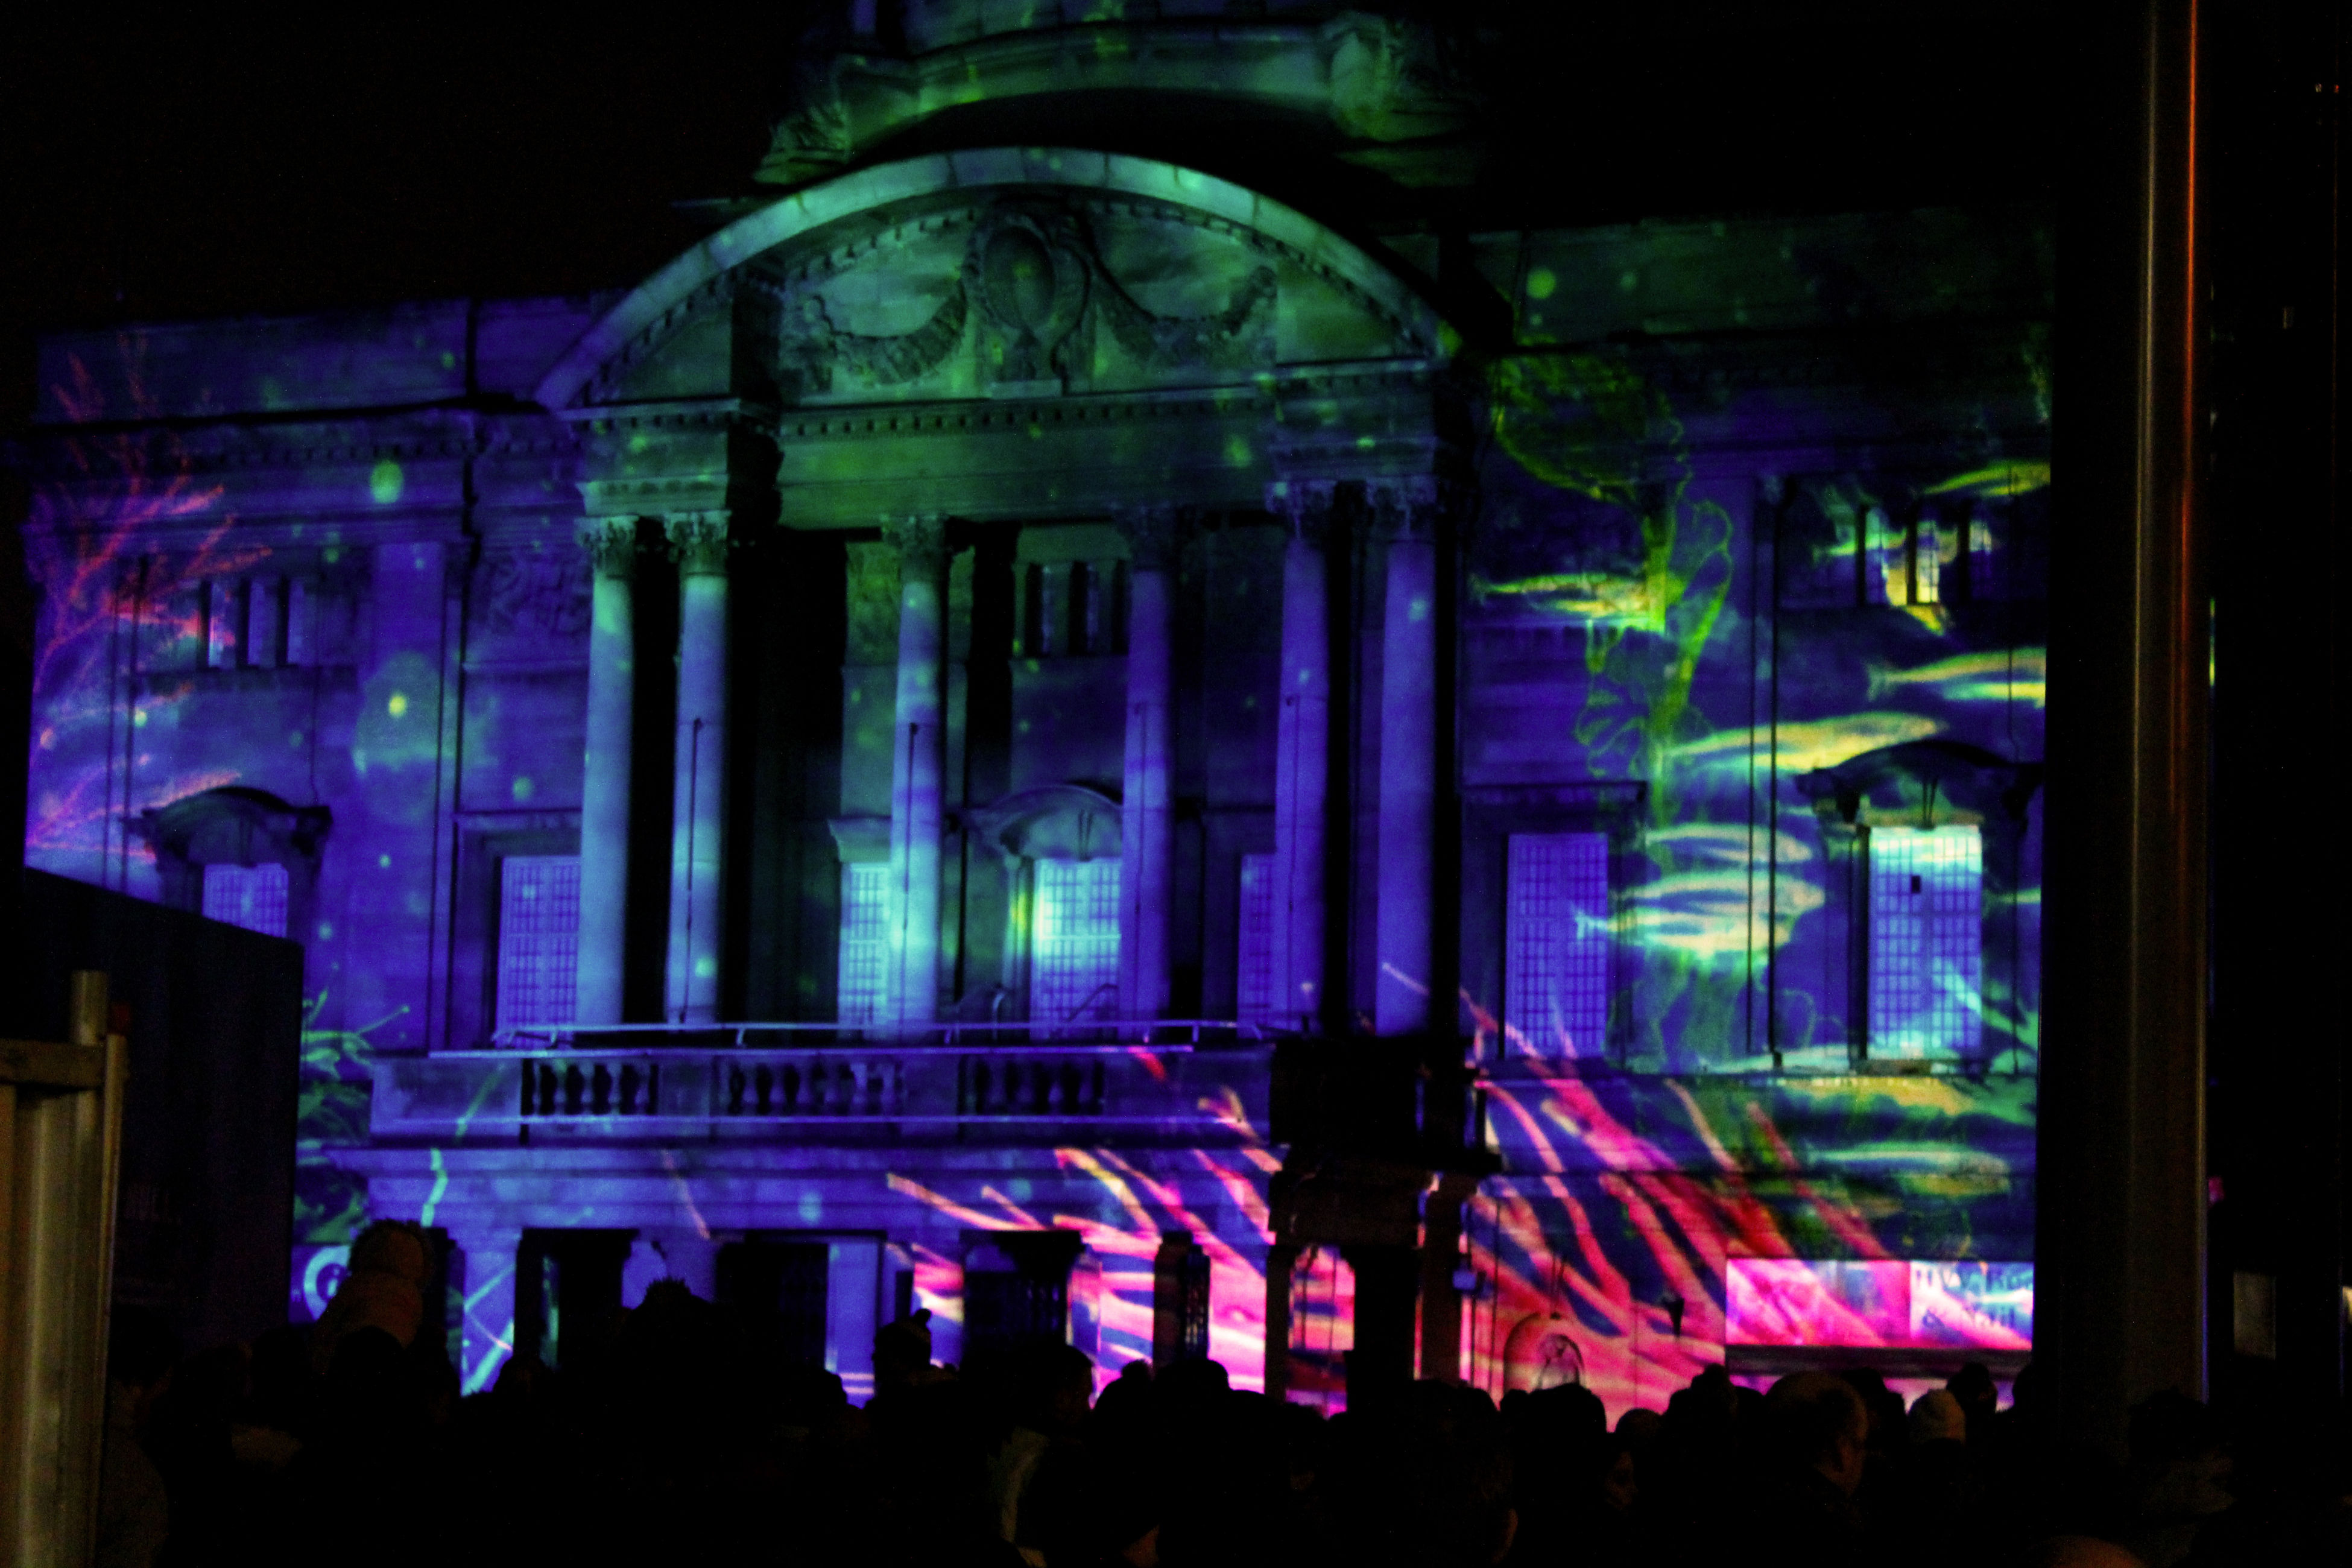 music, night, indoors, arts culture and entertainment, illuminated, architecture, no people